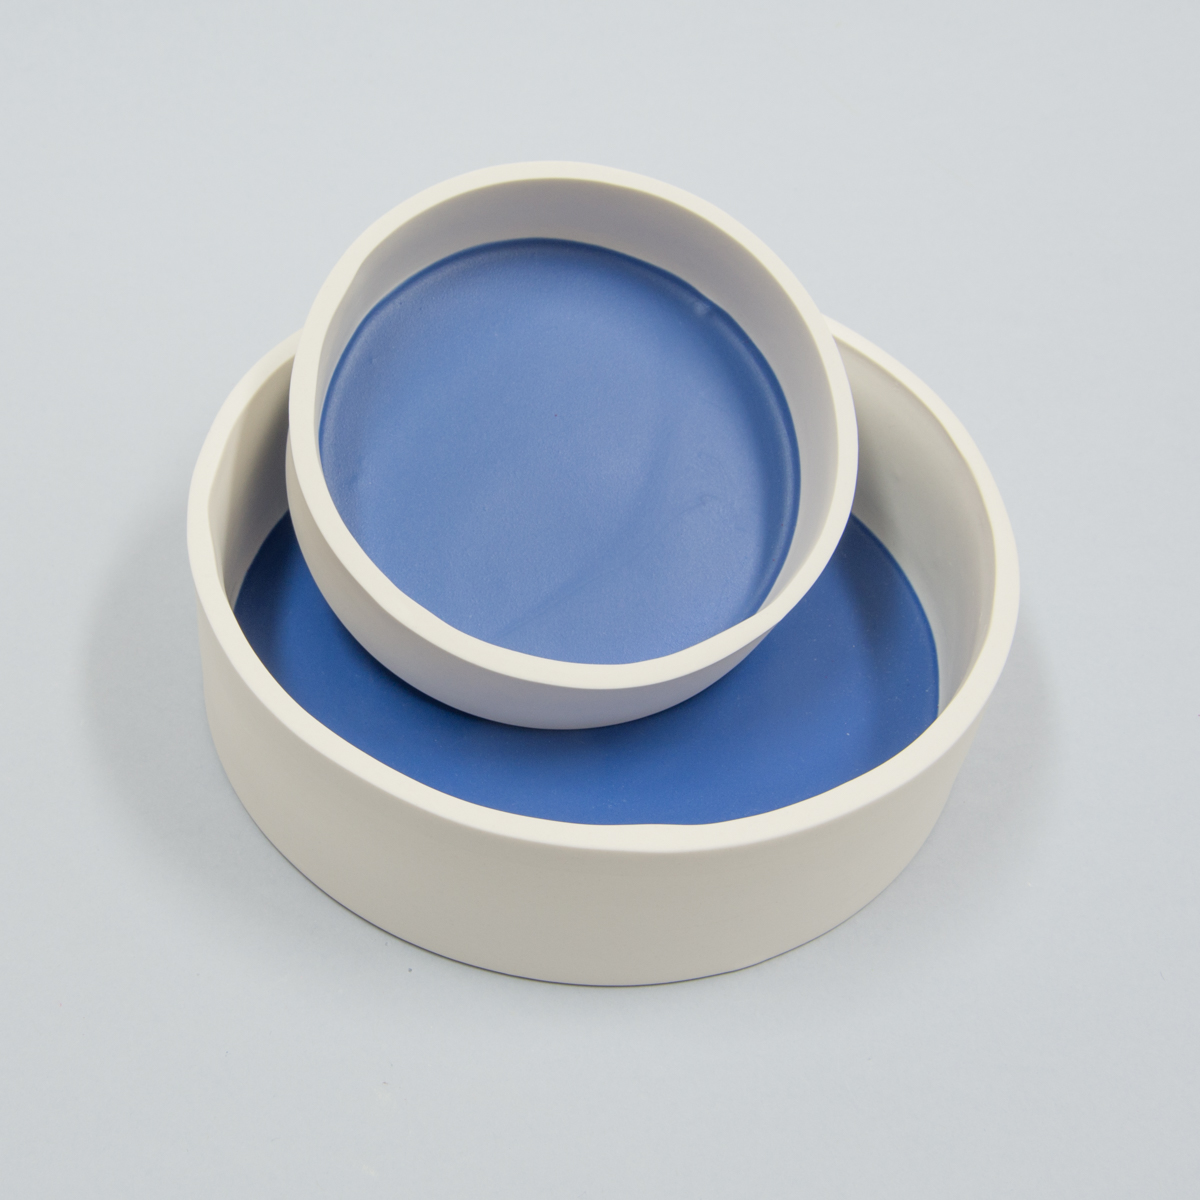 Set de 2 plats ronds bleu